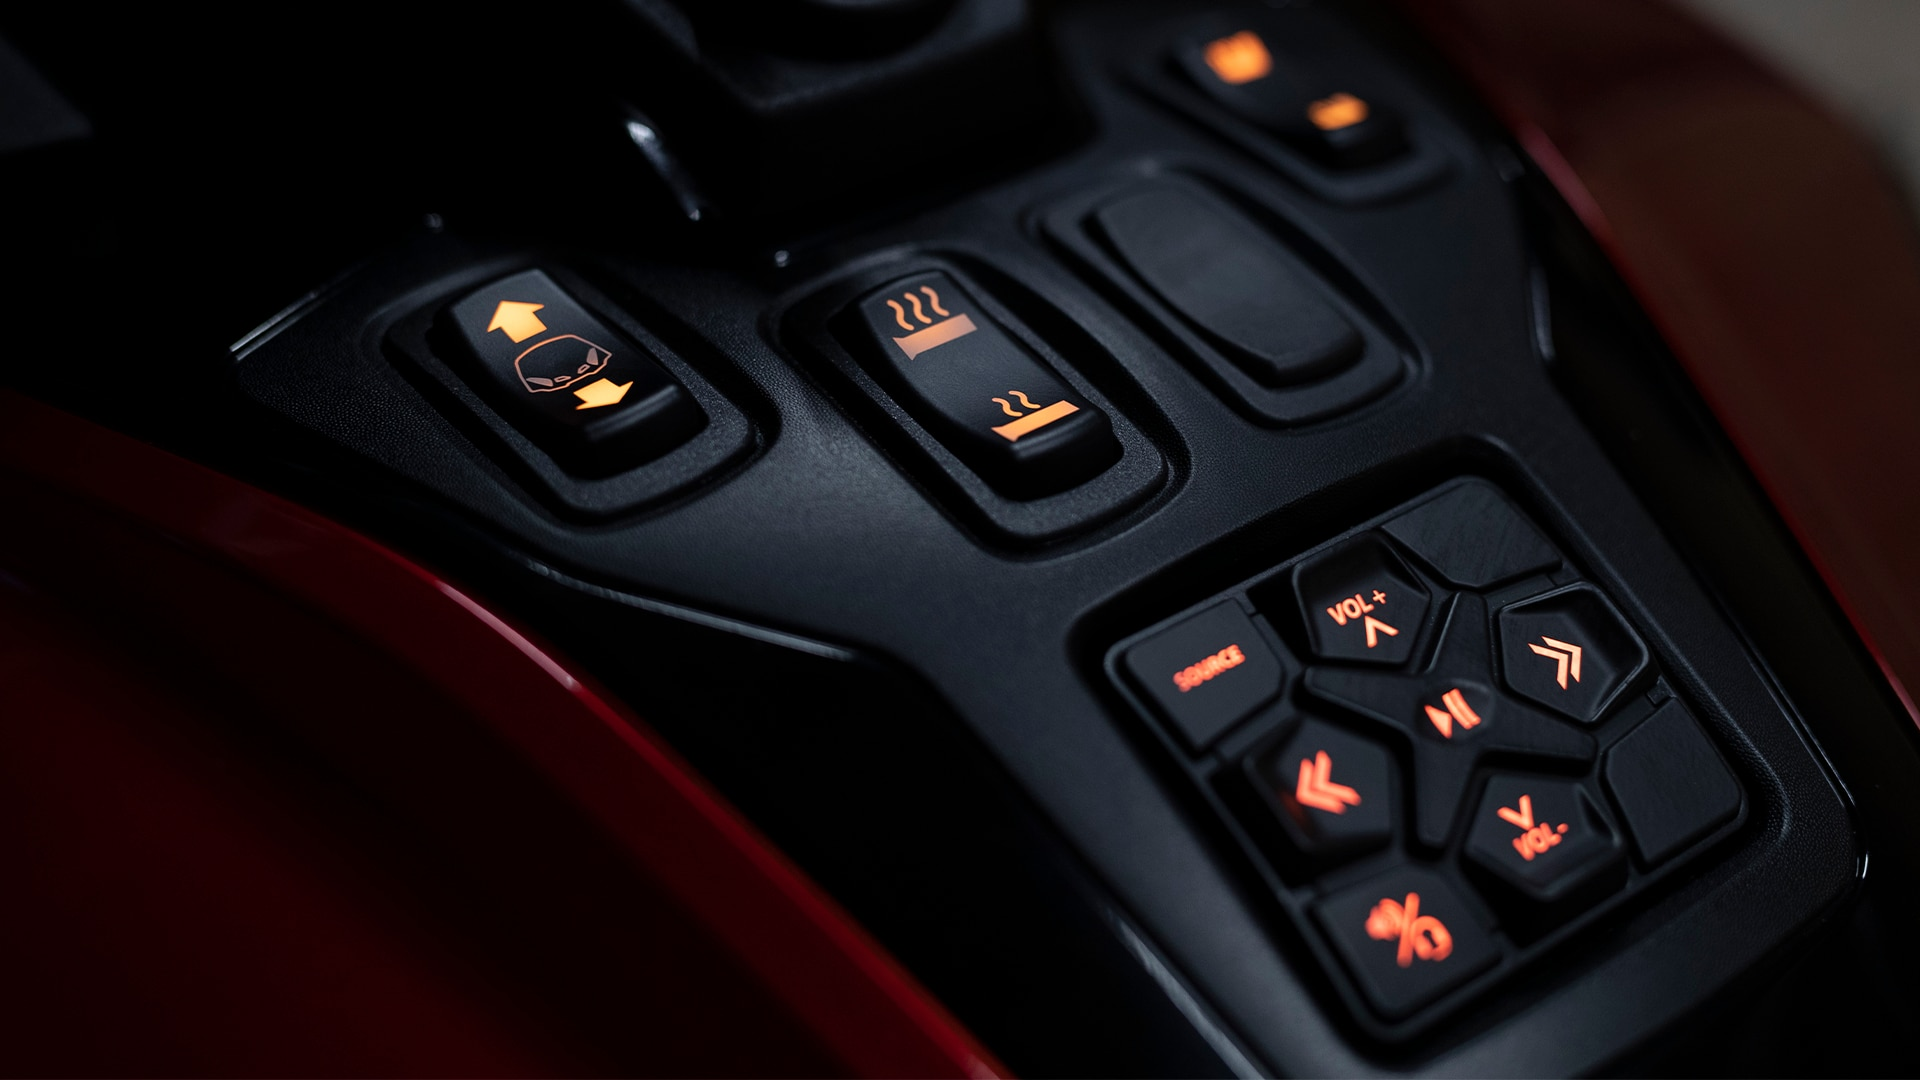 Can-Am Spyder RT audio control keypad